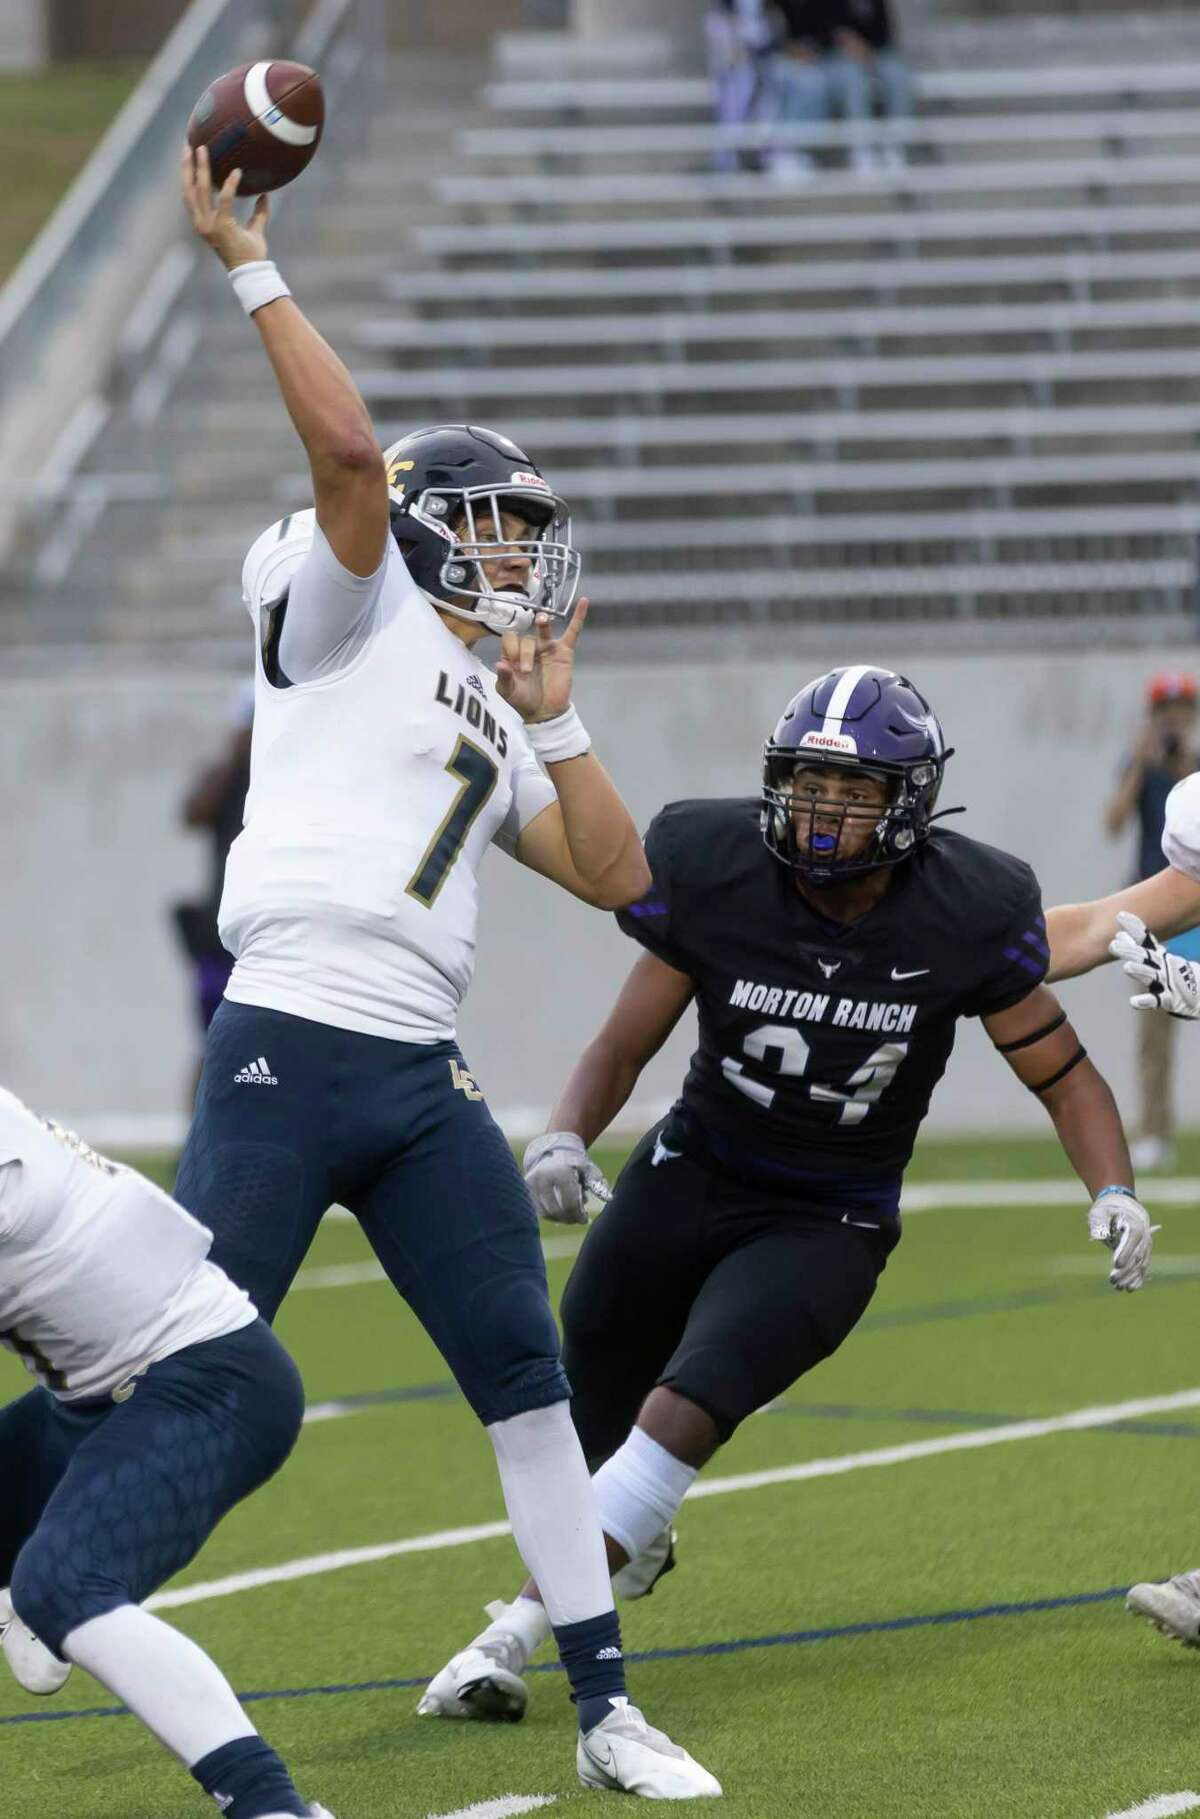 Lake Creek quarterback Cade Tessier (7) throws while under pressure from Morton Ranch defensive lineman Benen Lee (24) during the first quarter of a a non-district football game at Legacy Stadium, Thursday, Sept. 16, 2021, in Katy.